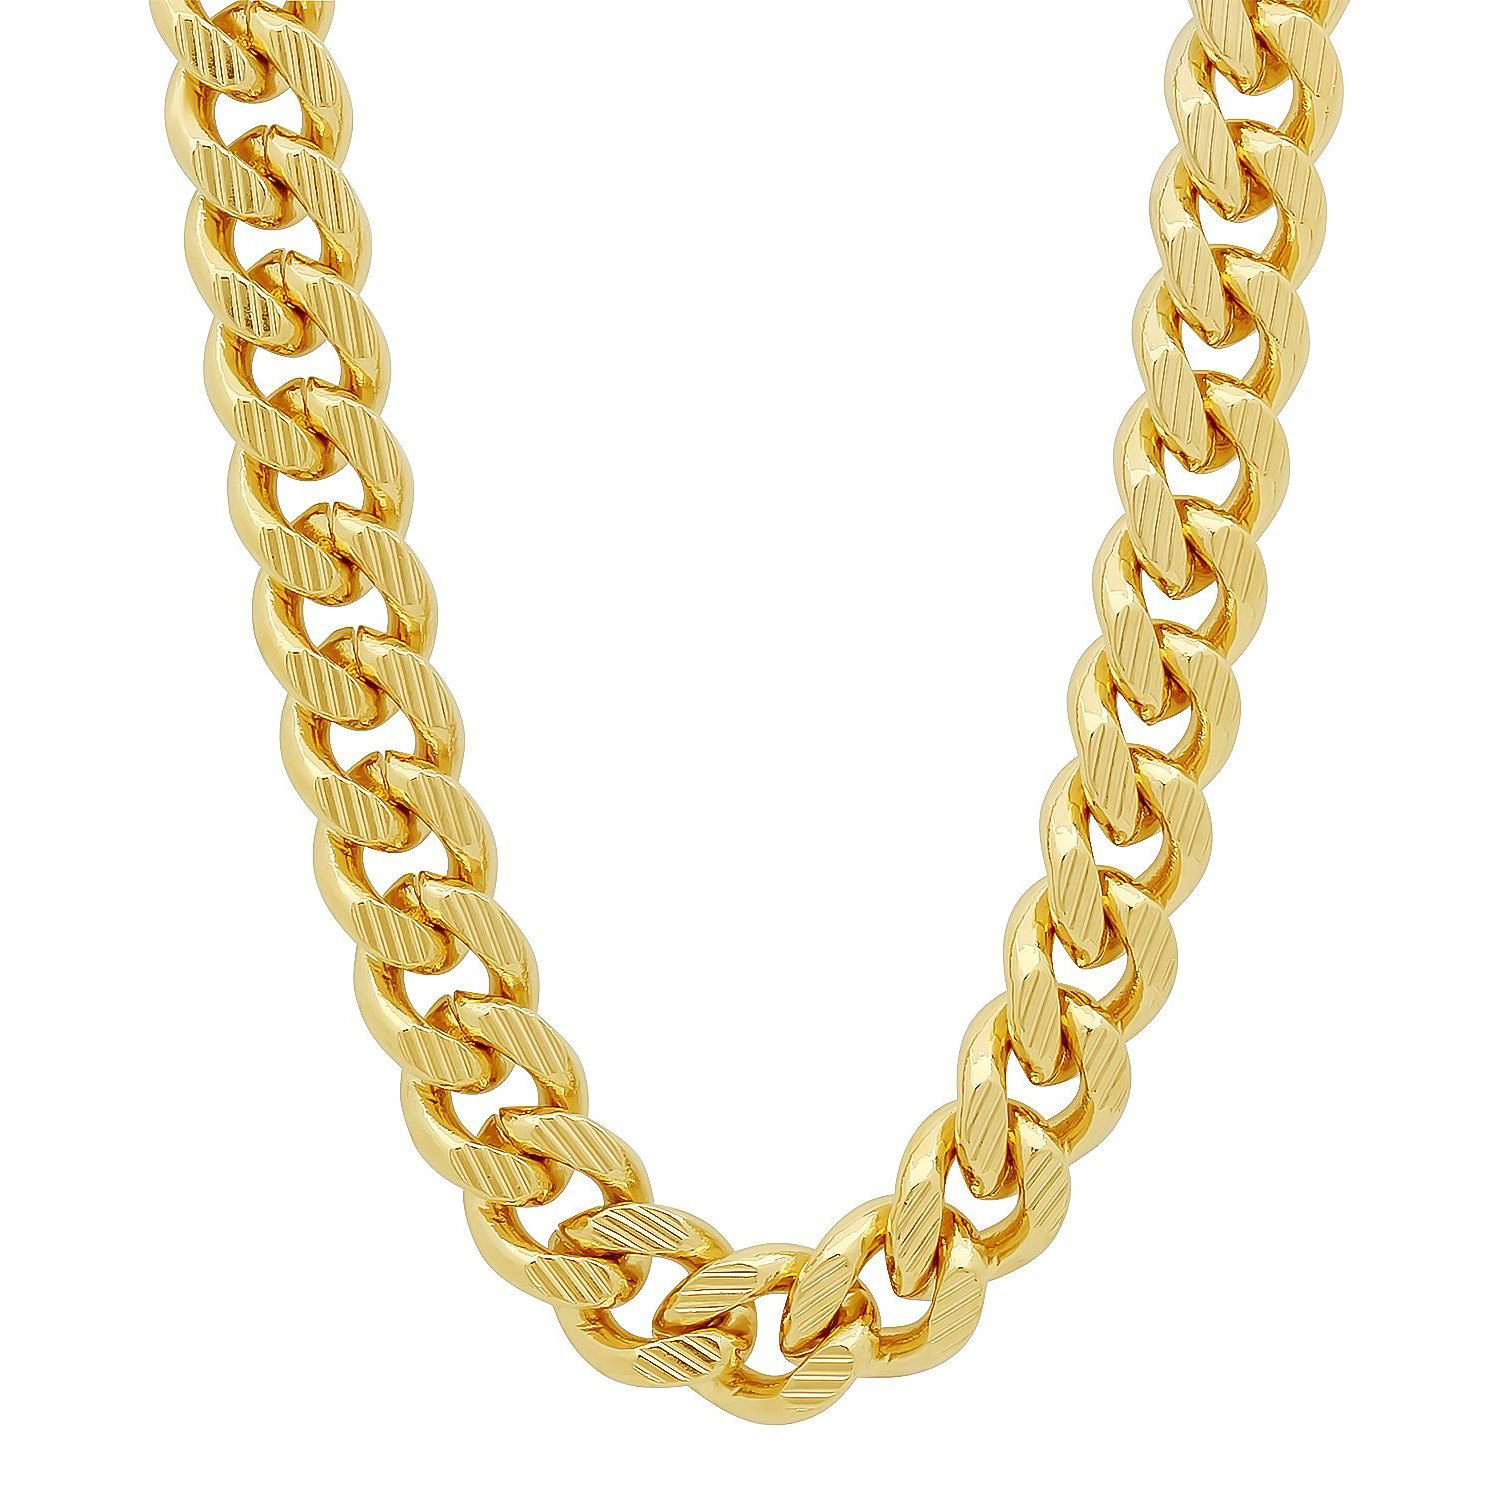 franco ct italian length available gold chains necklaces chain yellow